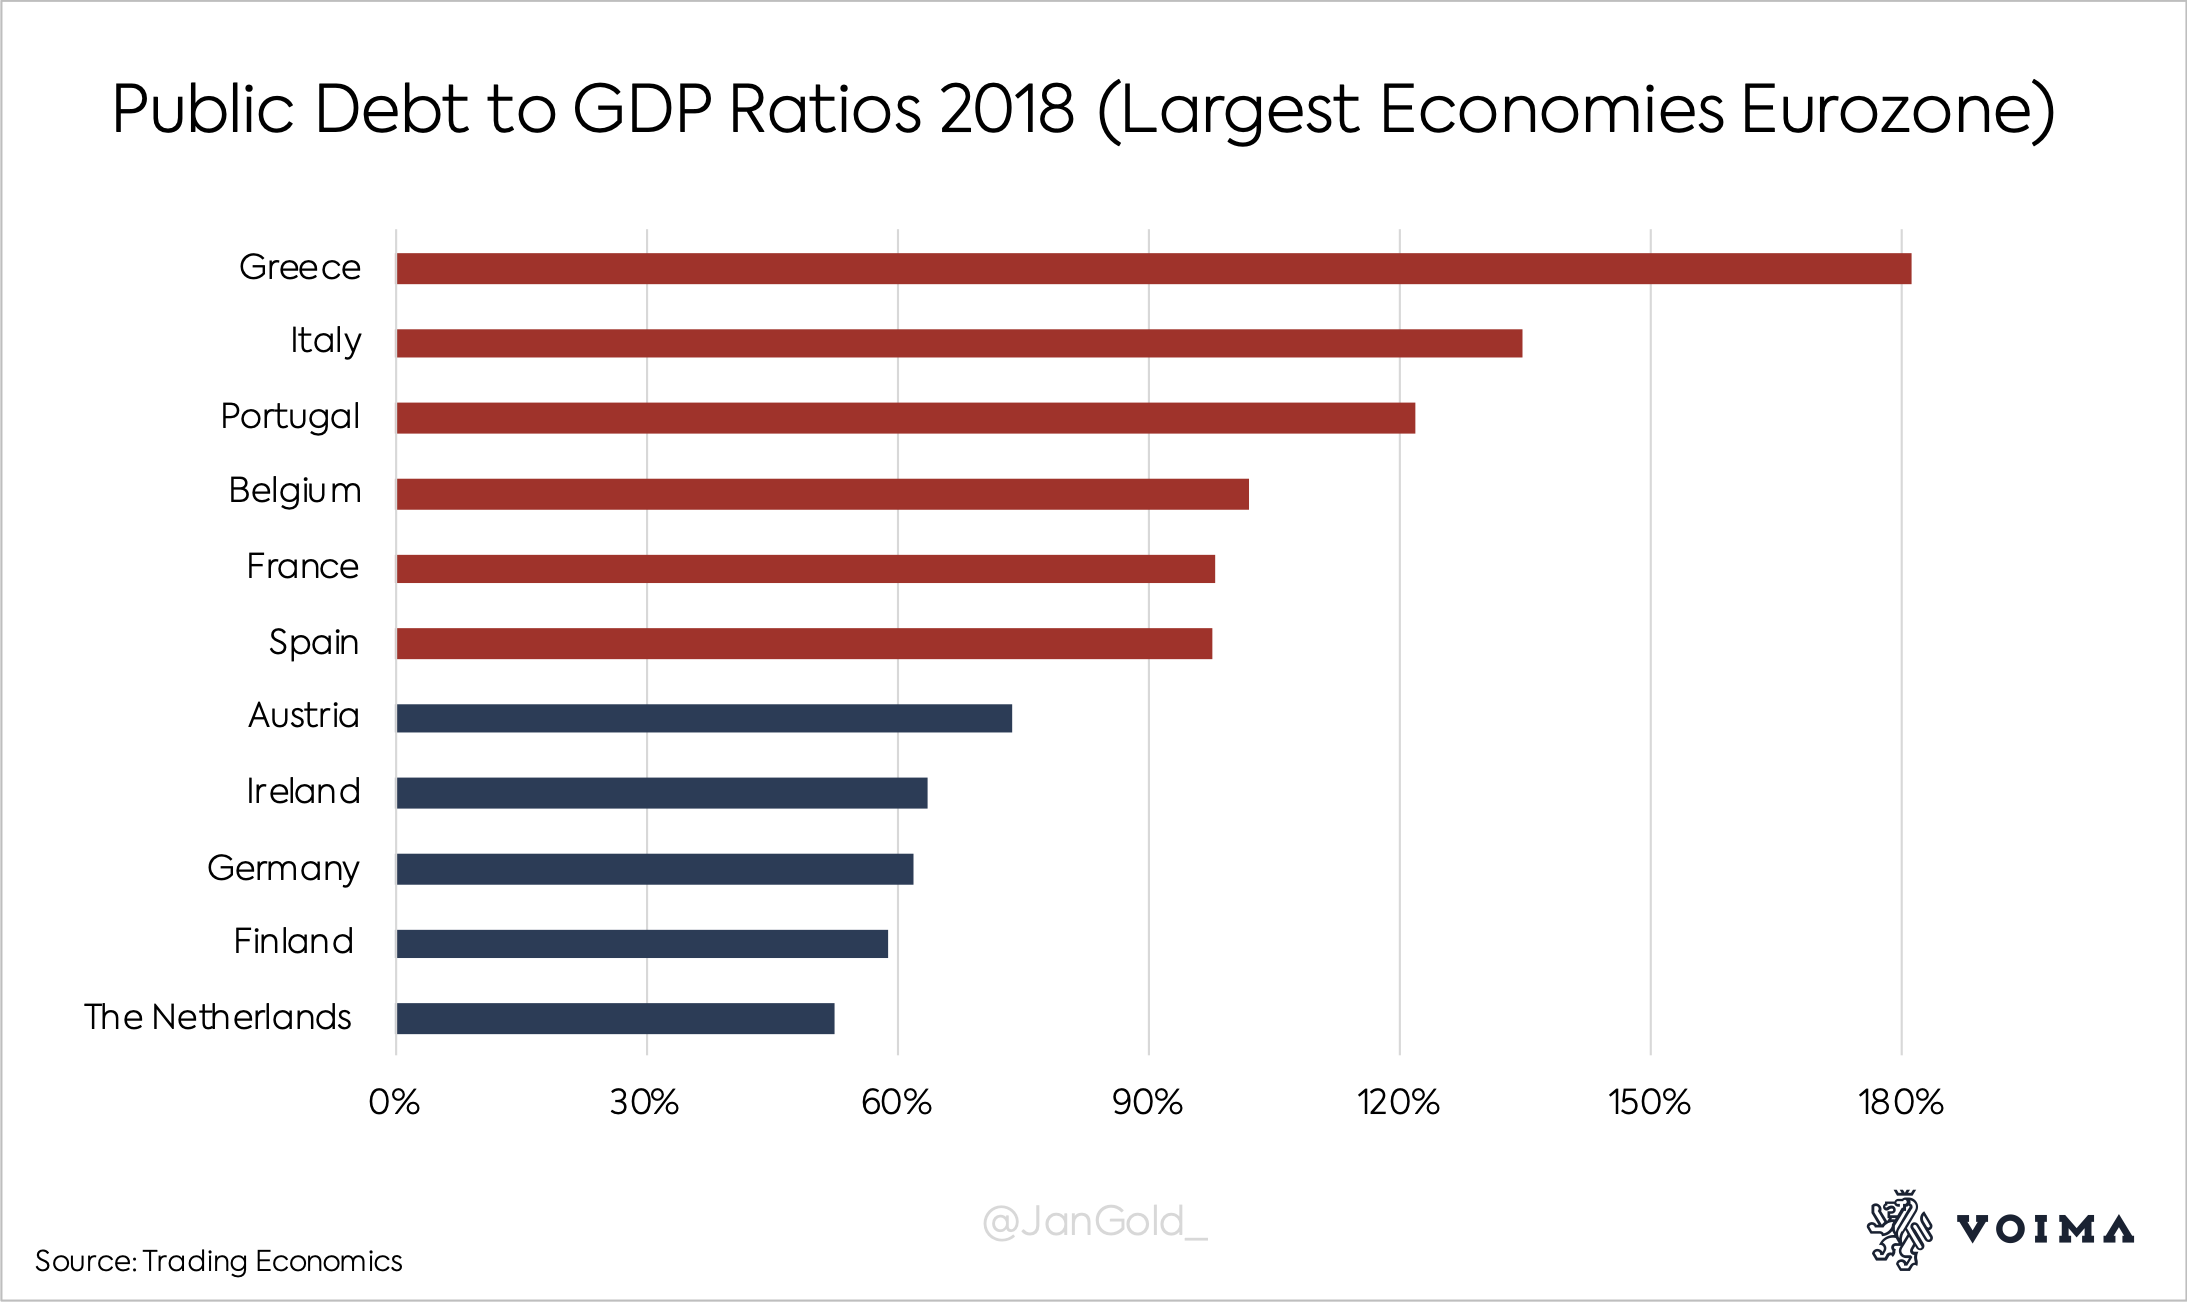 The Northern countries in the eurozone have the lowest public debt to GDP ratios. Southern countries tend to have higher debt ratios.